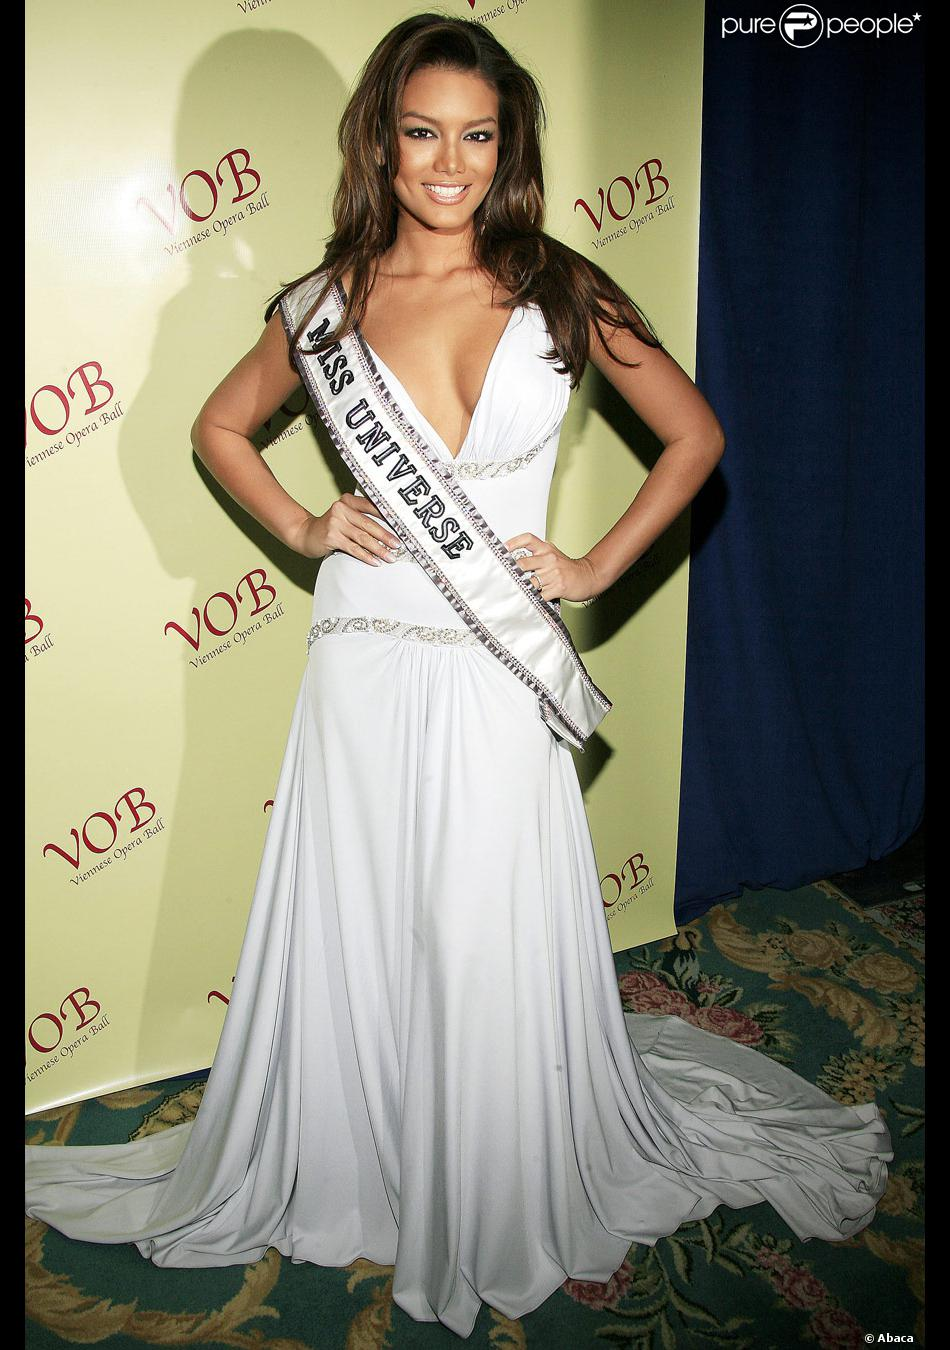 Miss Univers 2006, Zuleyka Rivera - Purepeople